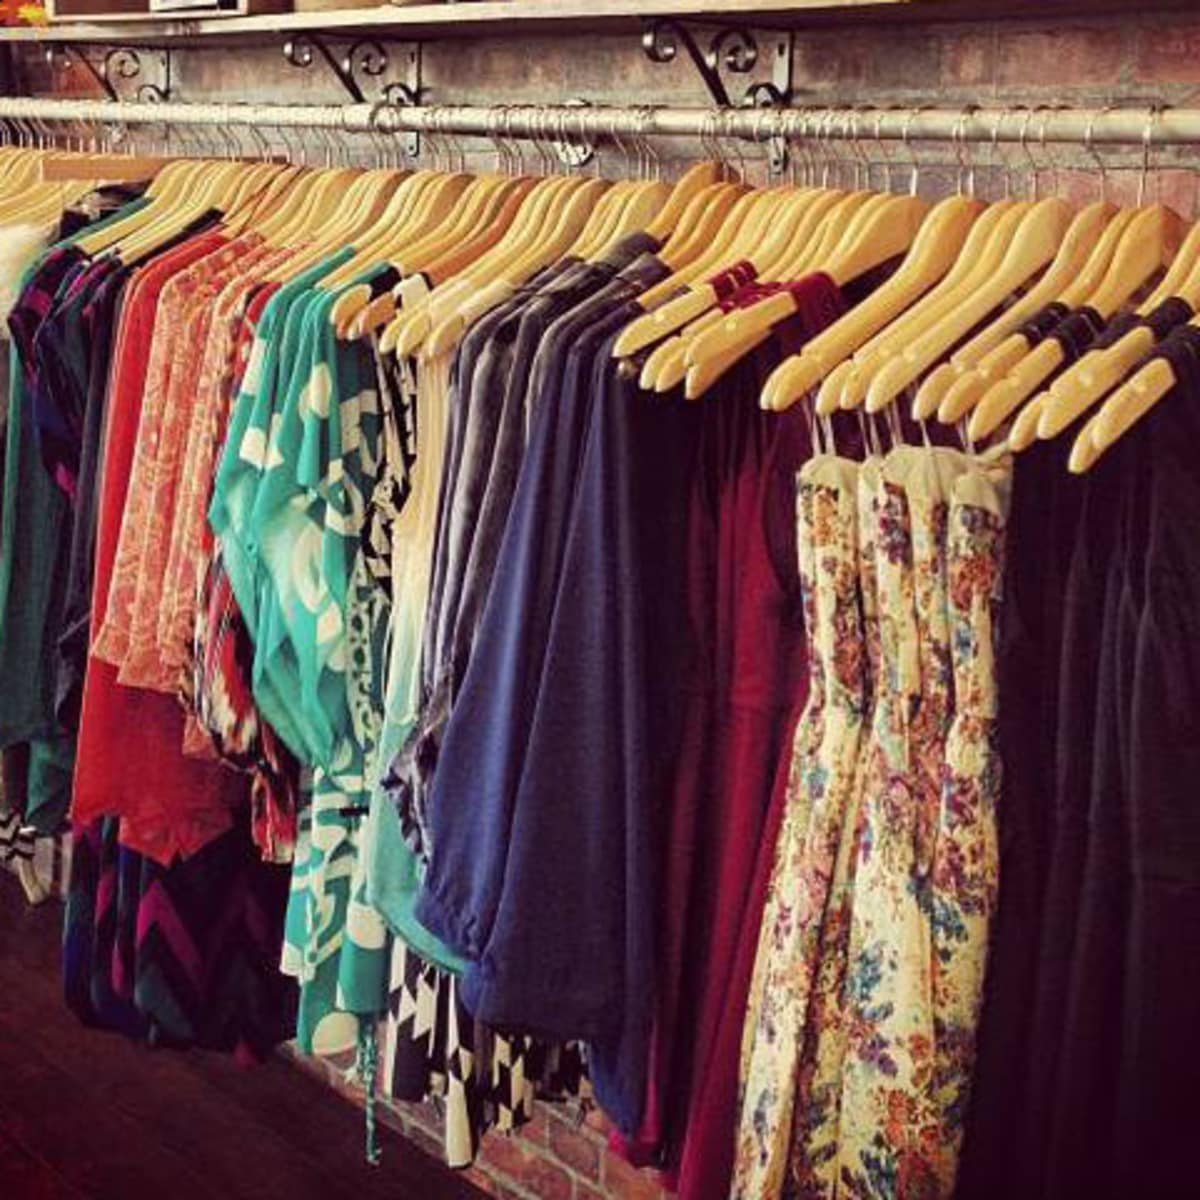 Retrospection boutique in Fort Worth